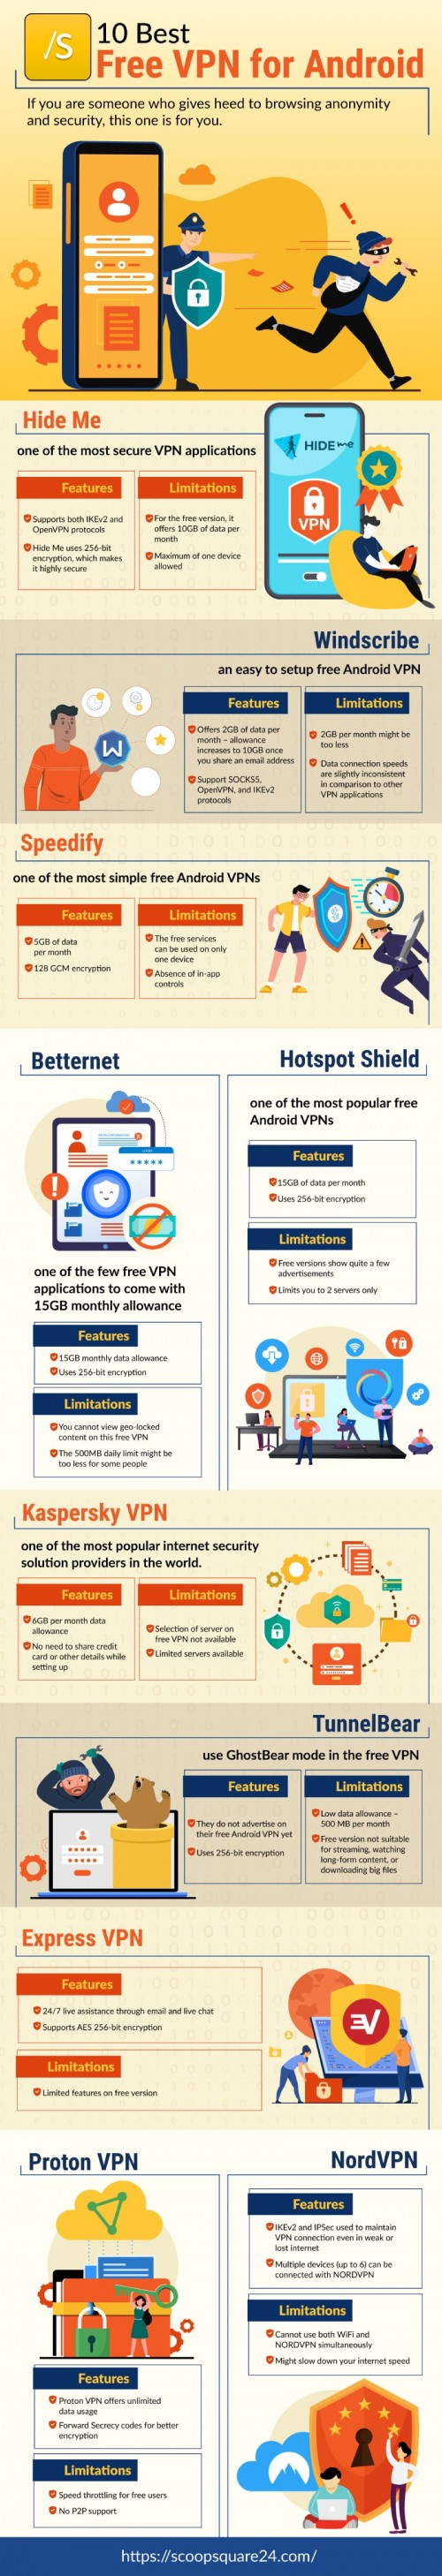 10 Best Free VPN for Android